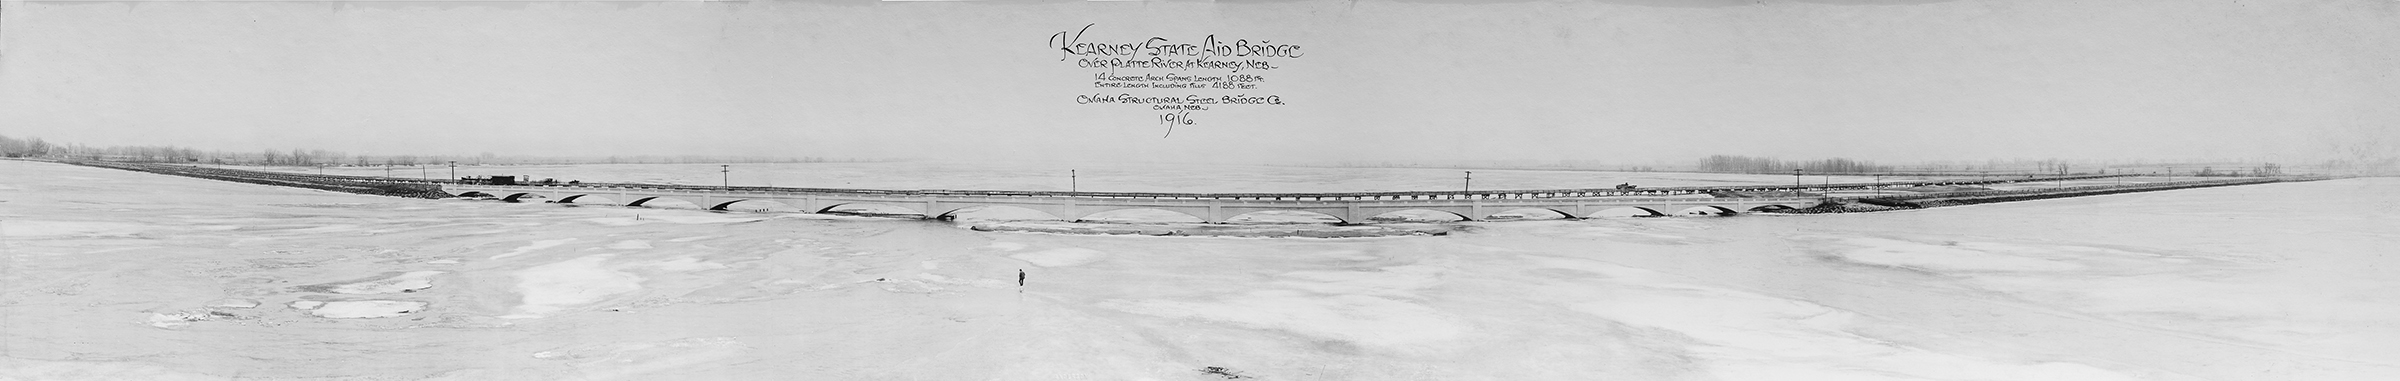 Panoramic view of the Kearney Bridge in 1916. Built with 14 concrete arch spans to a total length of 4188 ft. (Buffalo County Historical Society)